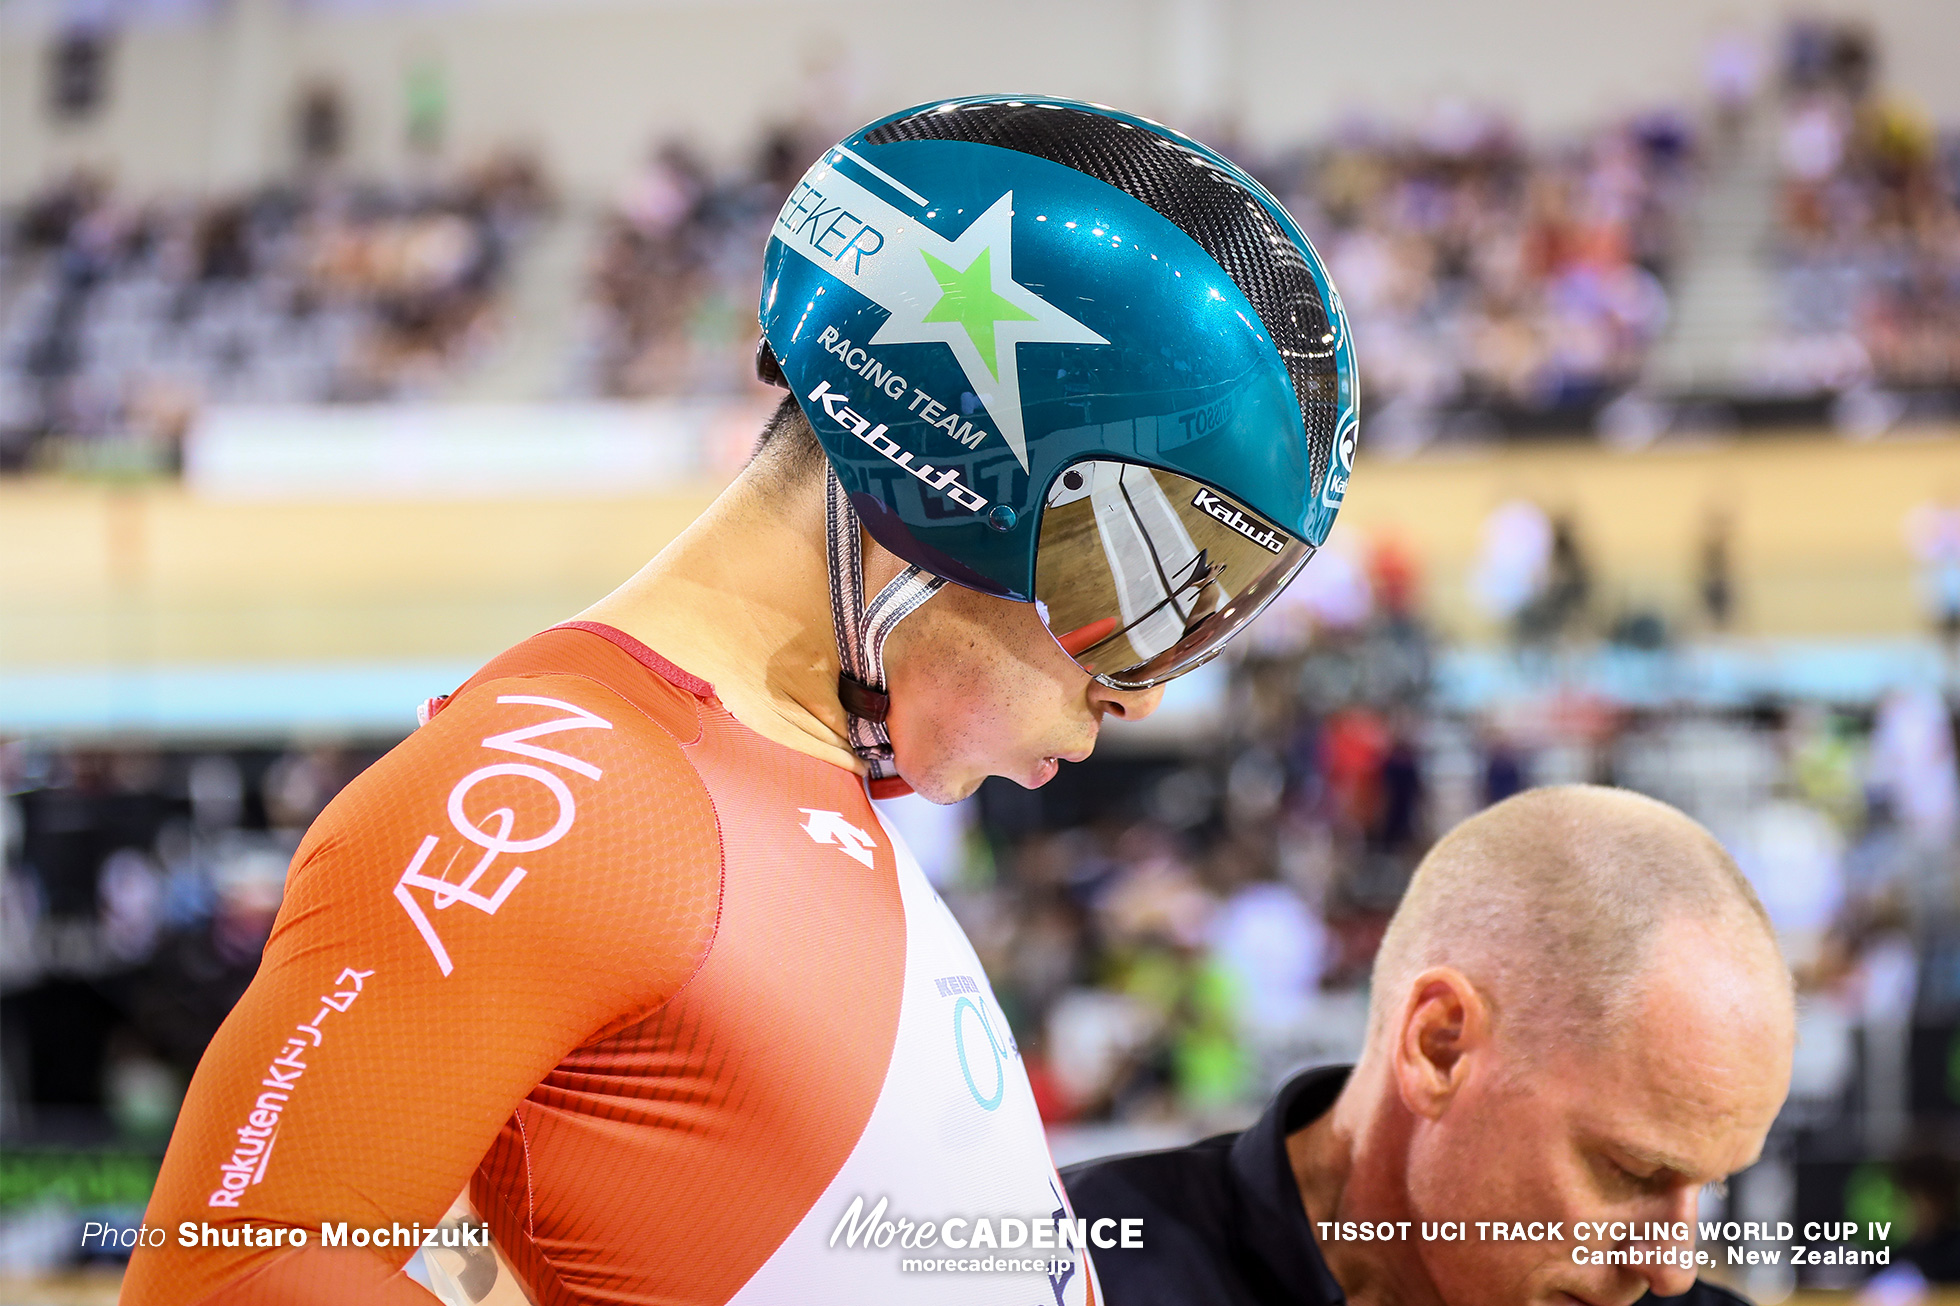 Final / Men's Sprint / TISSOT UCI TRACK CYCLING WORLD CUP IV, Cambridge, New Zealand, 新田祐大